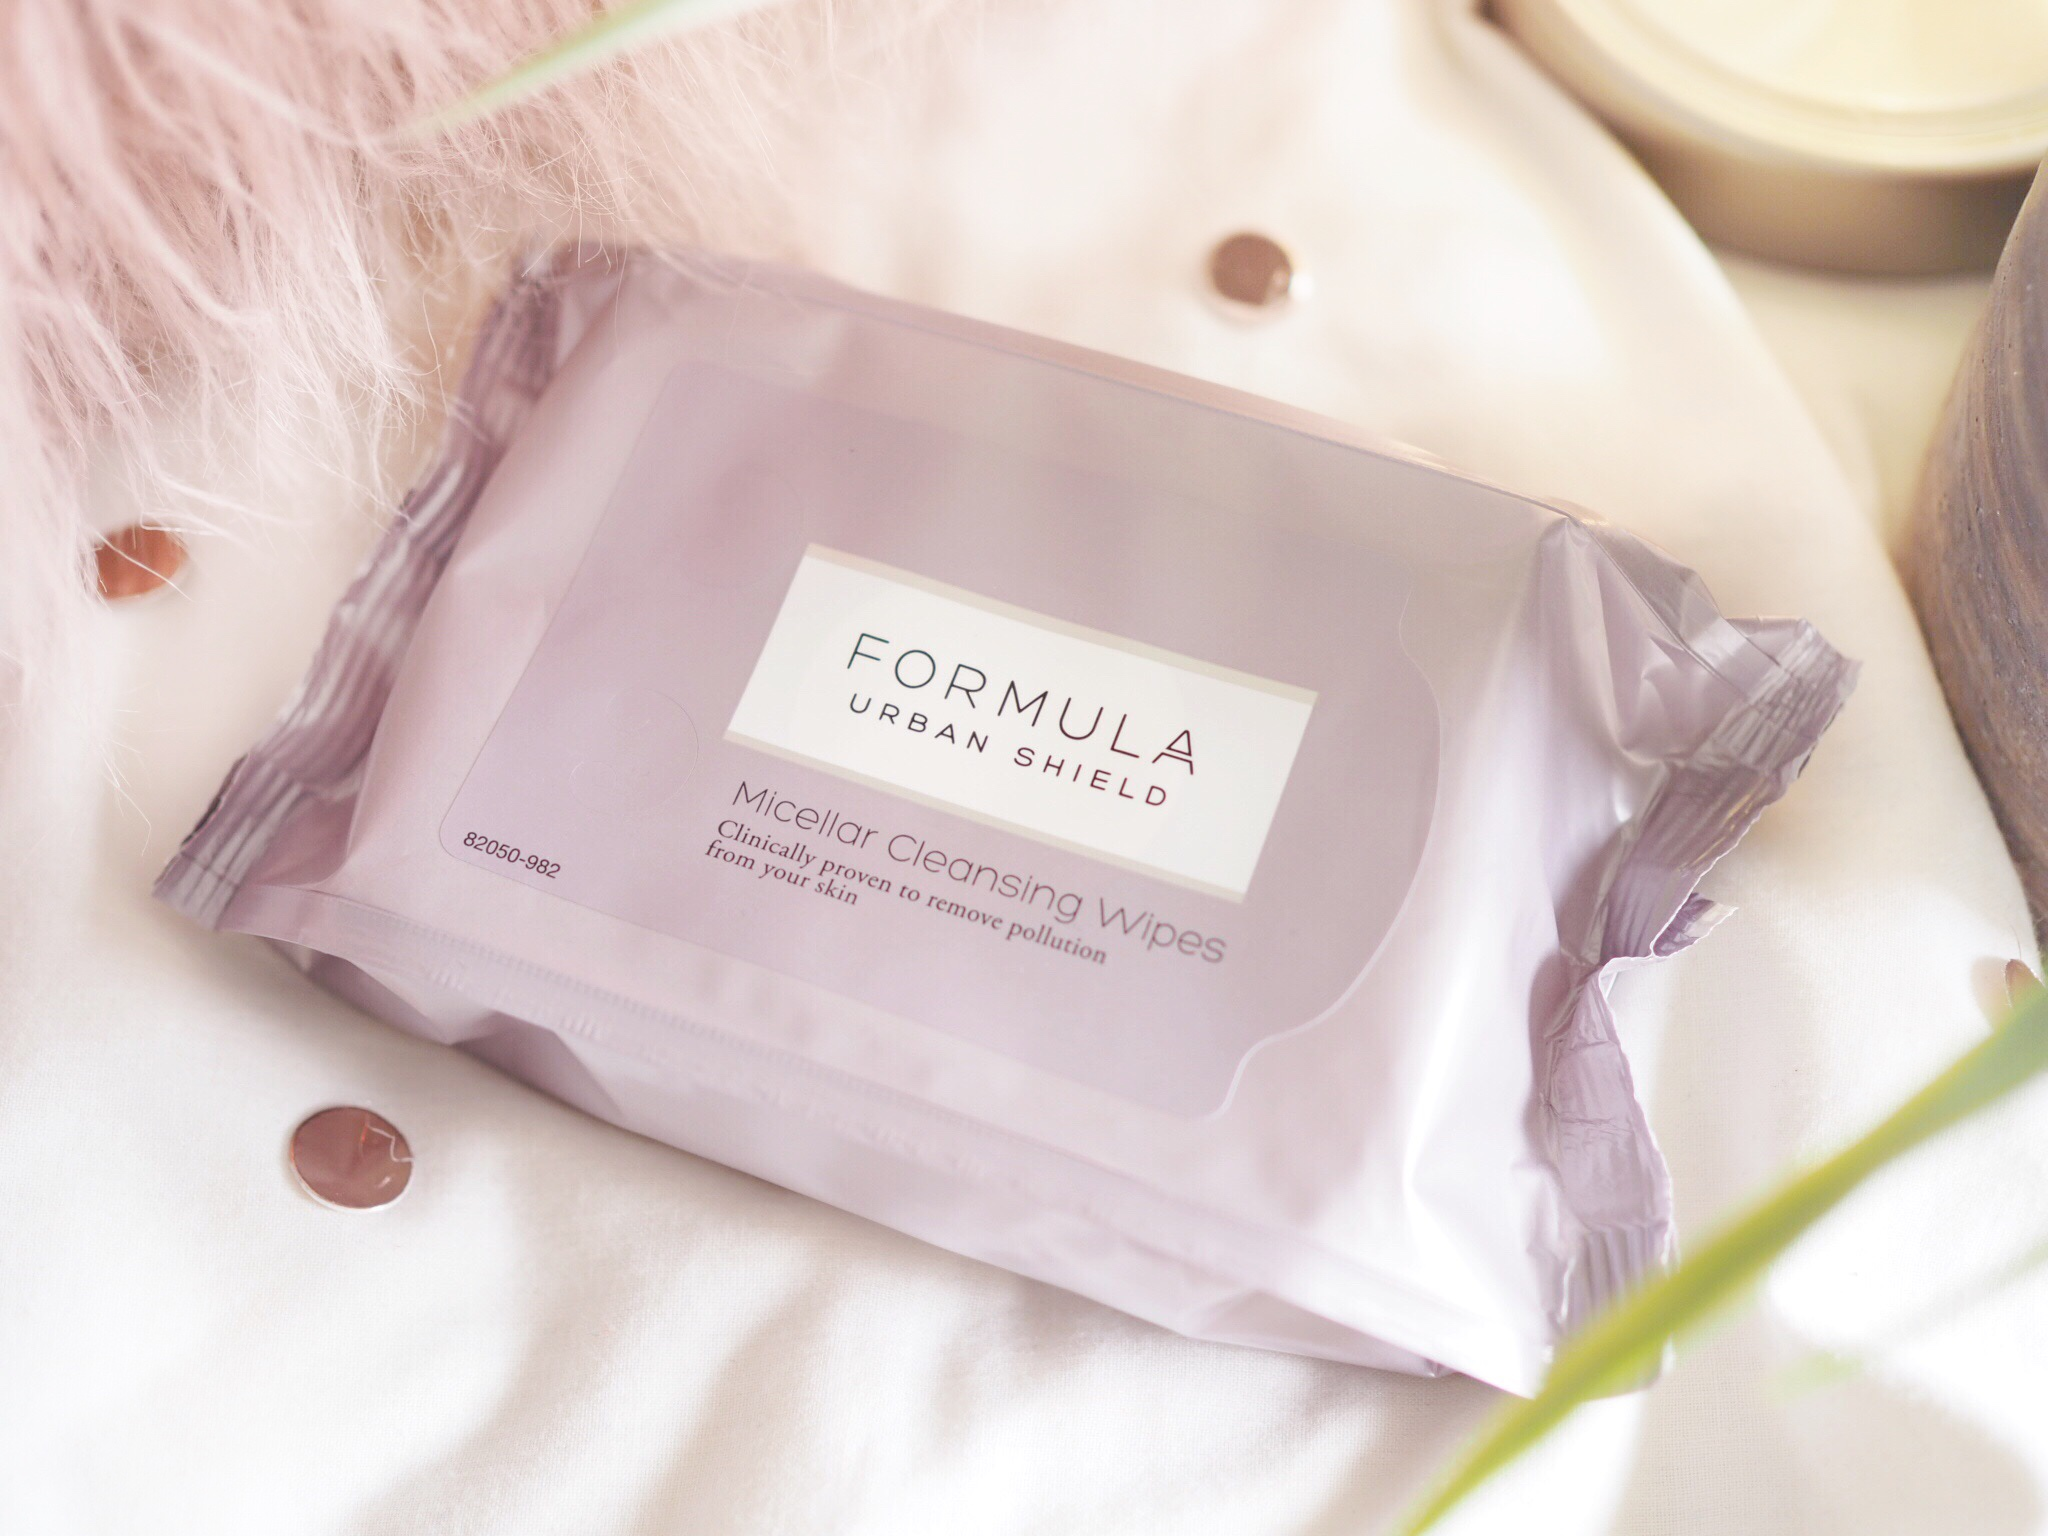 Formula Micellar Cleansing Wipes Review